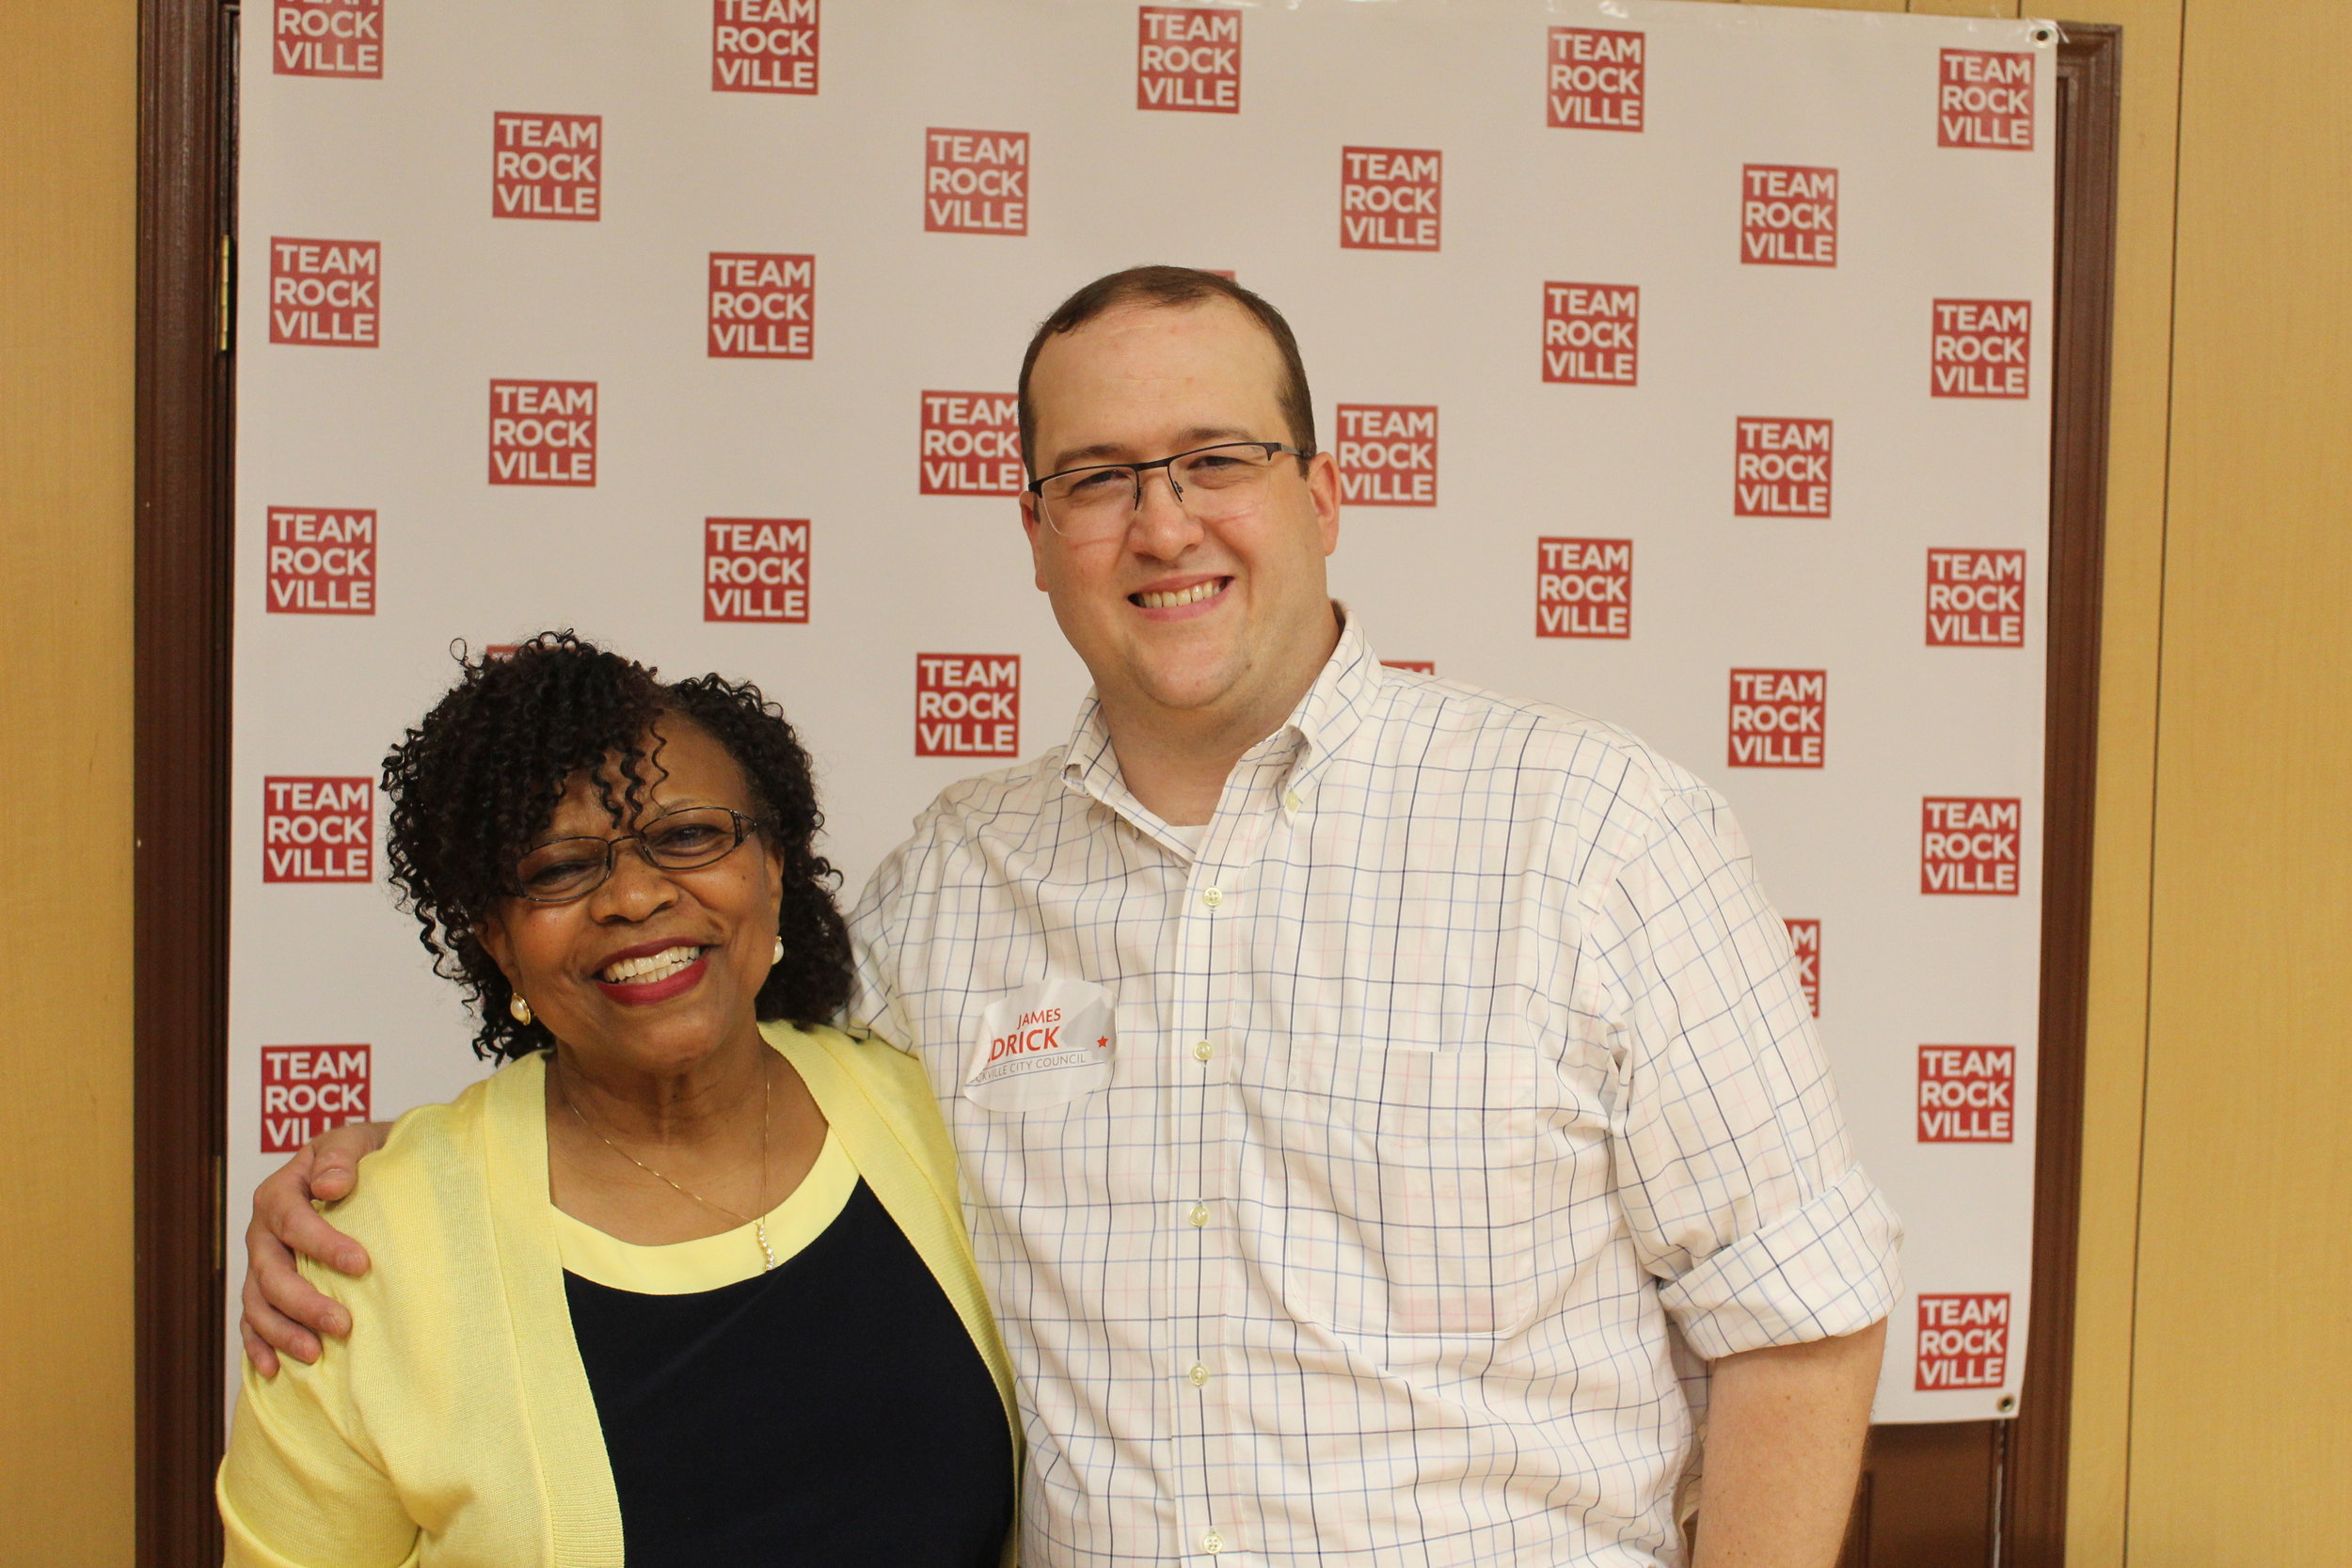 Me with Rockville's next Mayor!